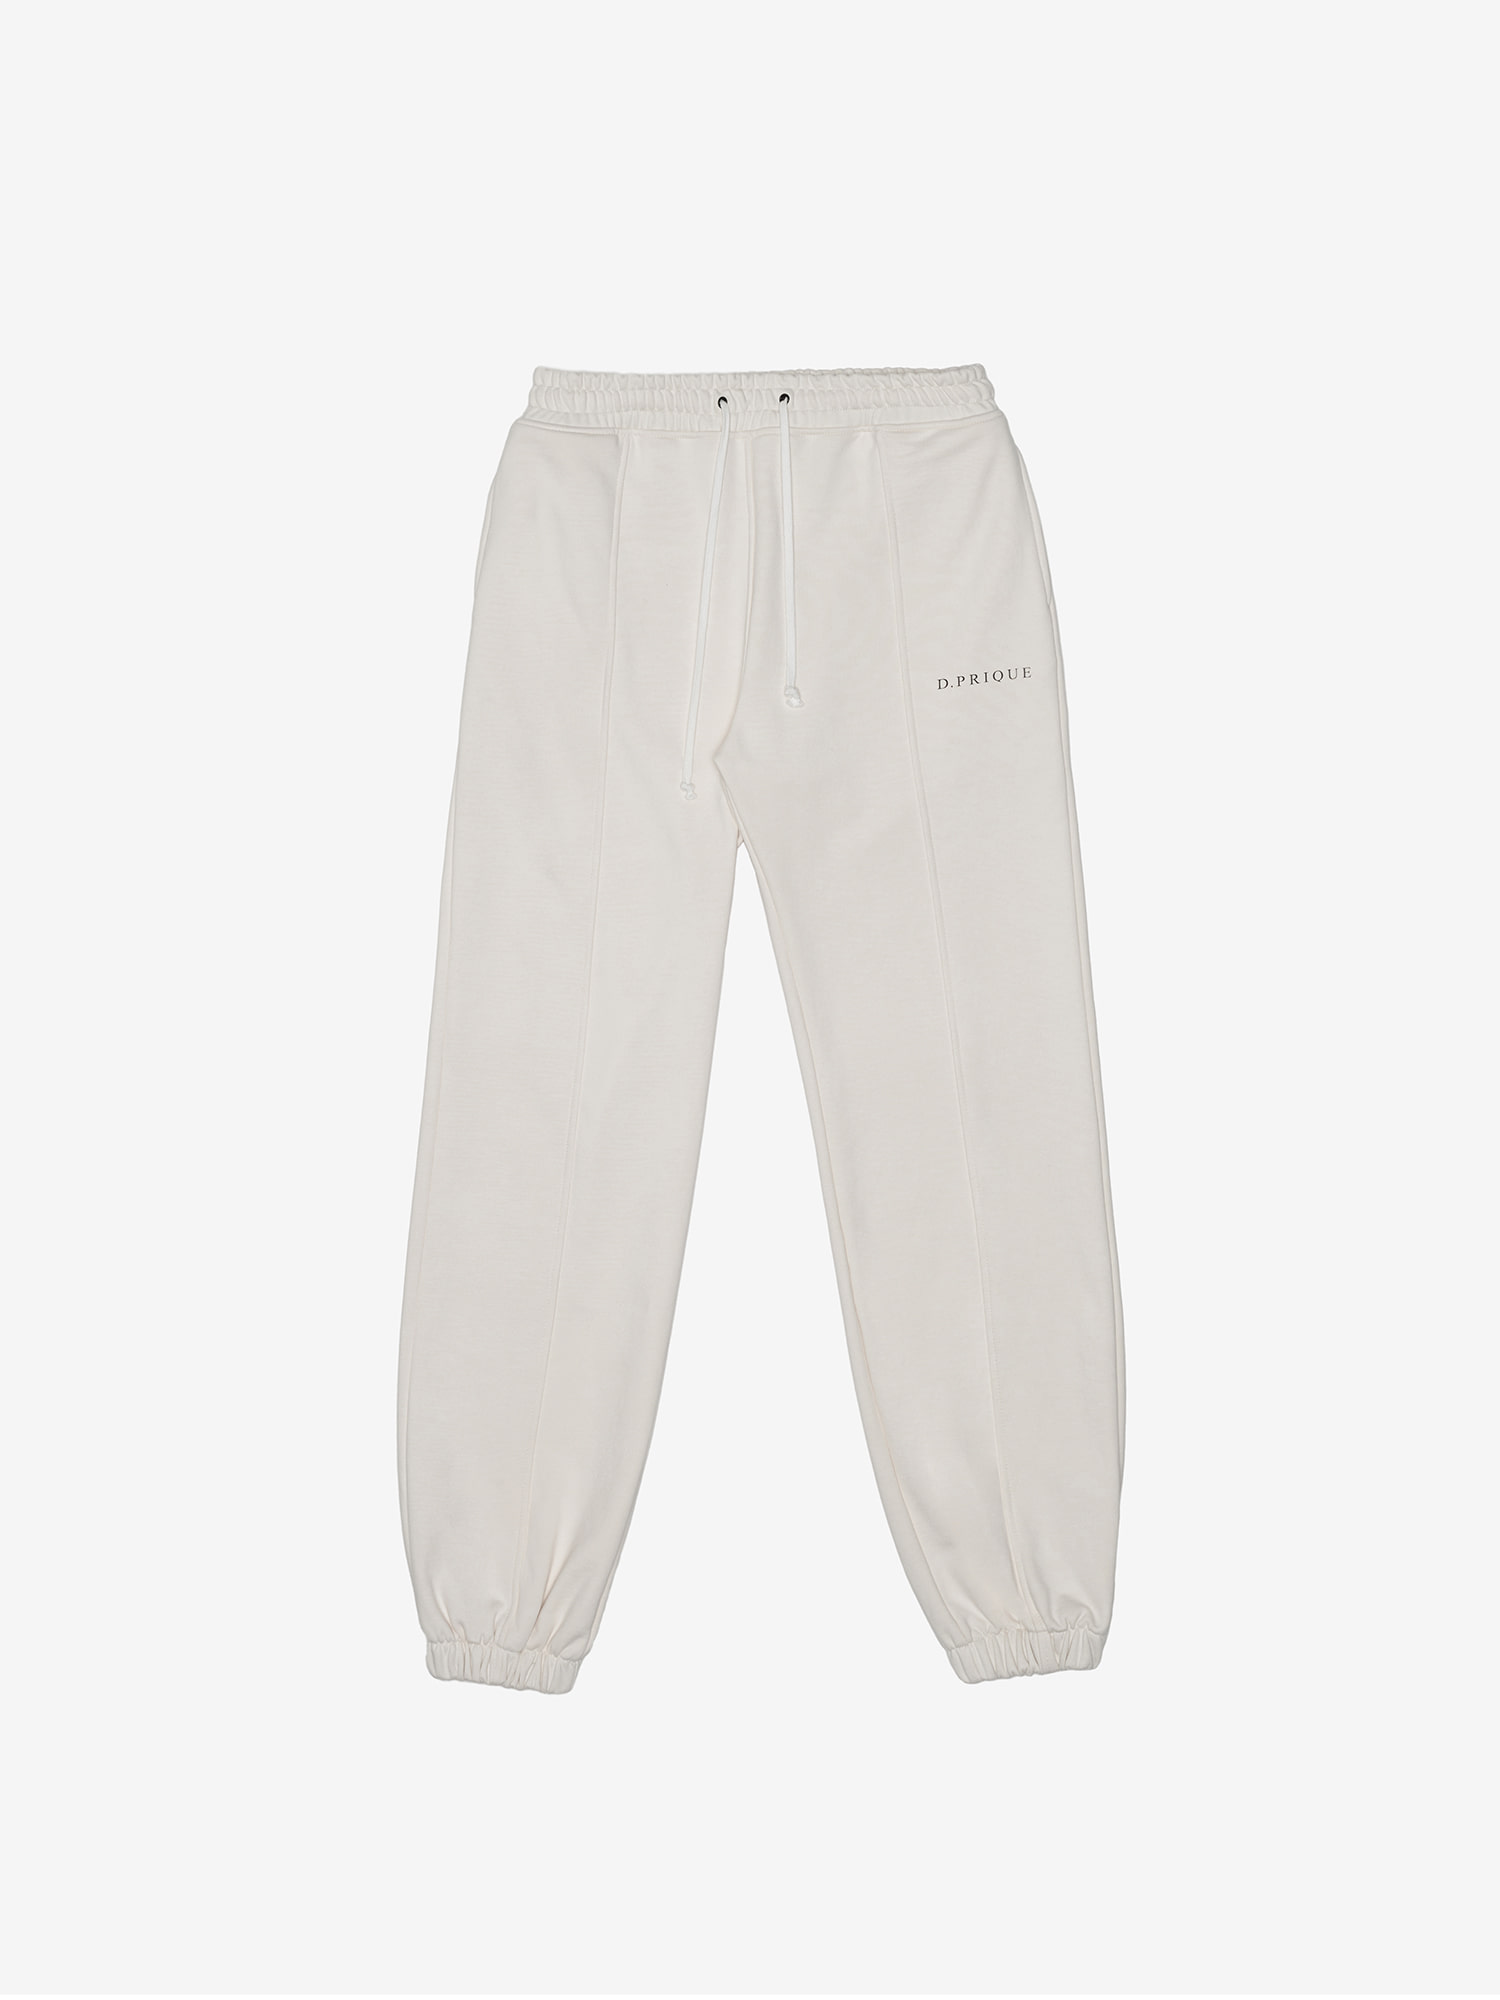 LOGO LOUNGE PANTS - Ivory